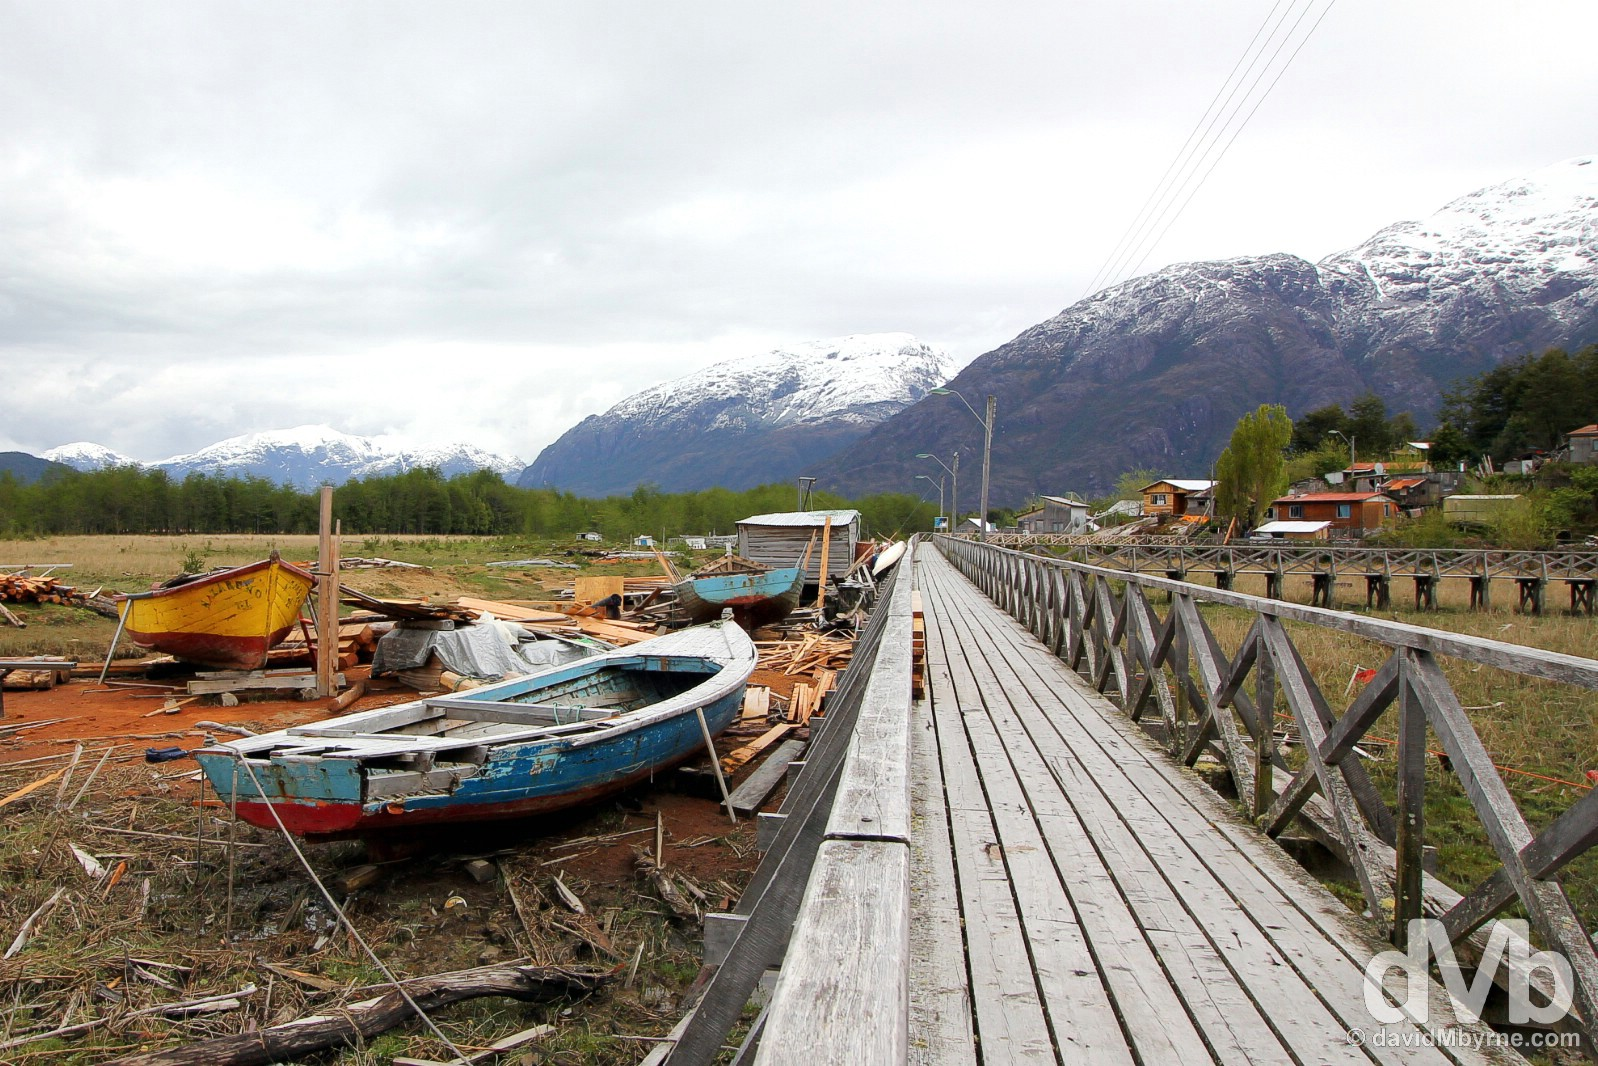 A boat repair yard in Junquillo, Caleta Tortel, Aysen, Chile. October 29, 2015.